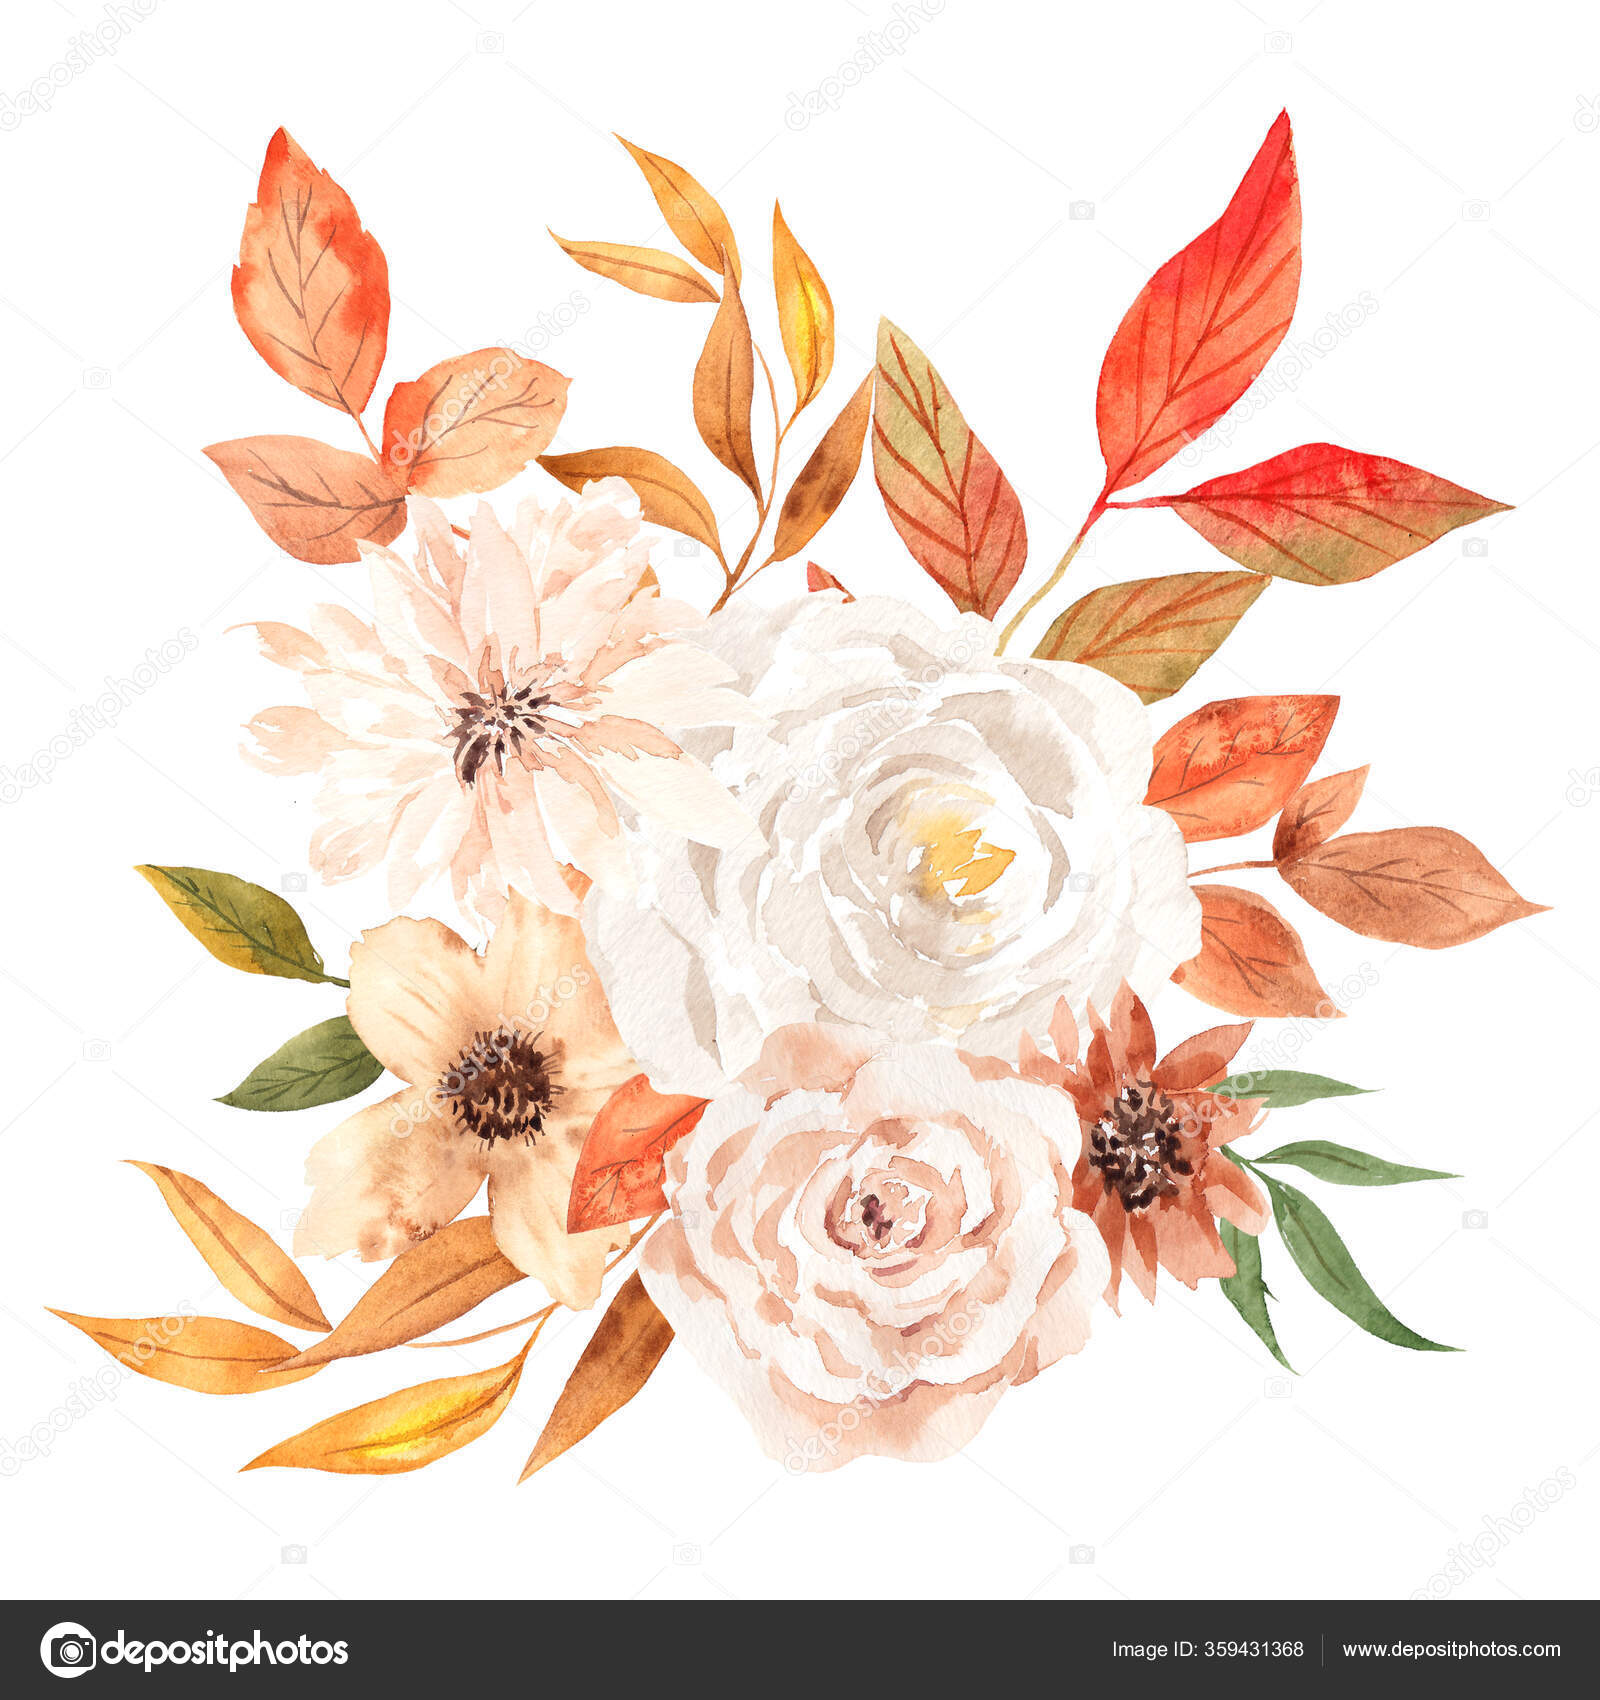 Autumn Bouquet Pretty Flowers Leaves Watercolor Hand Draw Floral Element Stock Photo Image By C Ma I Vi 359431368